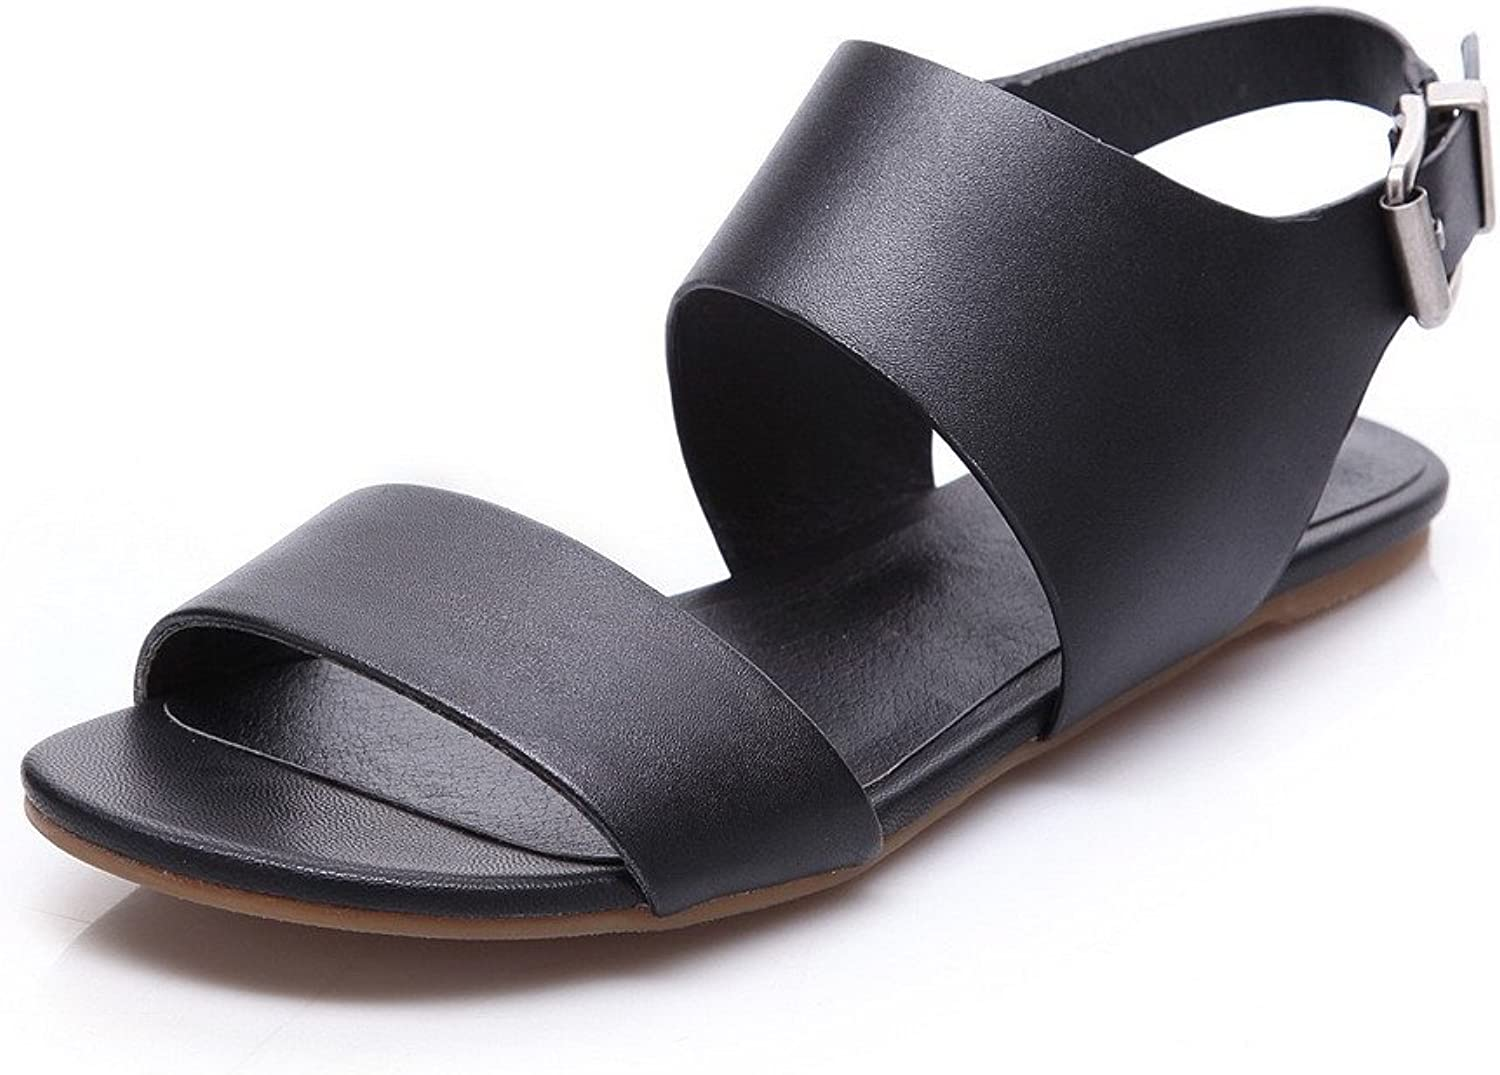 AmoonyFashion Women's Soft Material Buckle Open Toe No Heel Solid Sandals